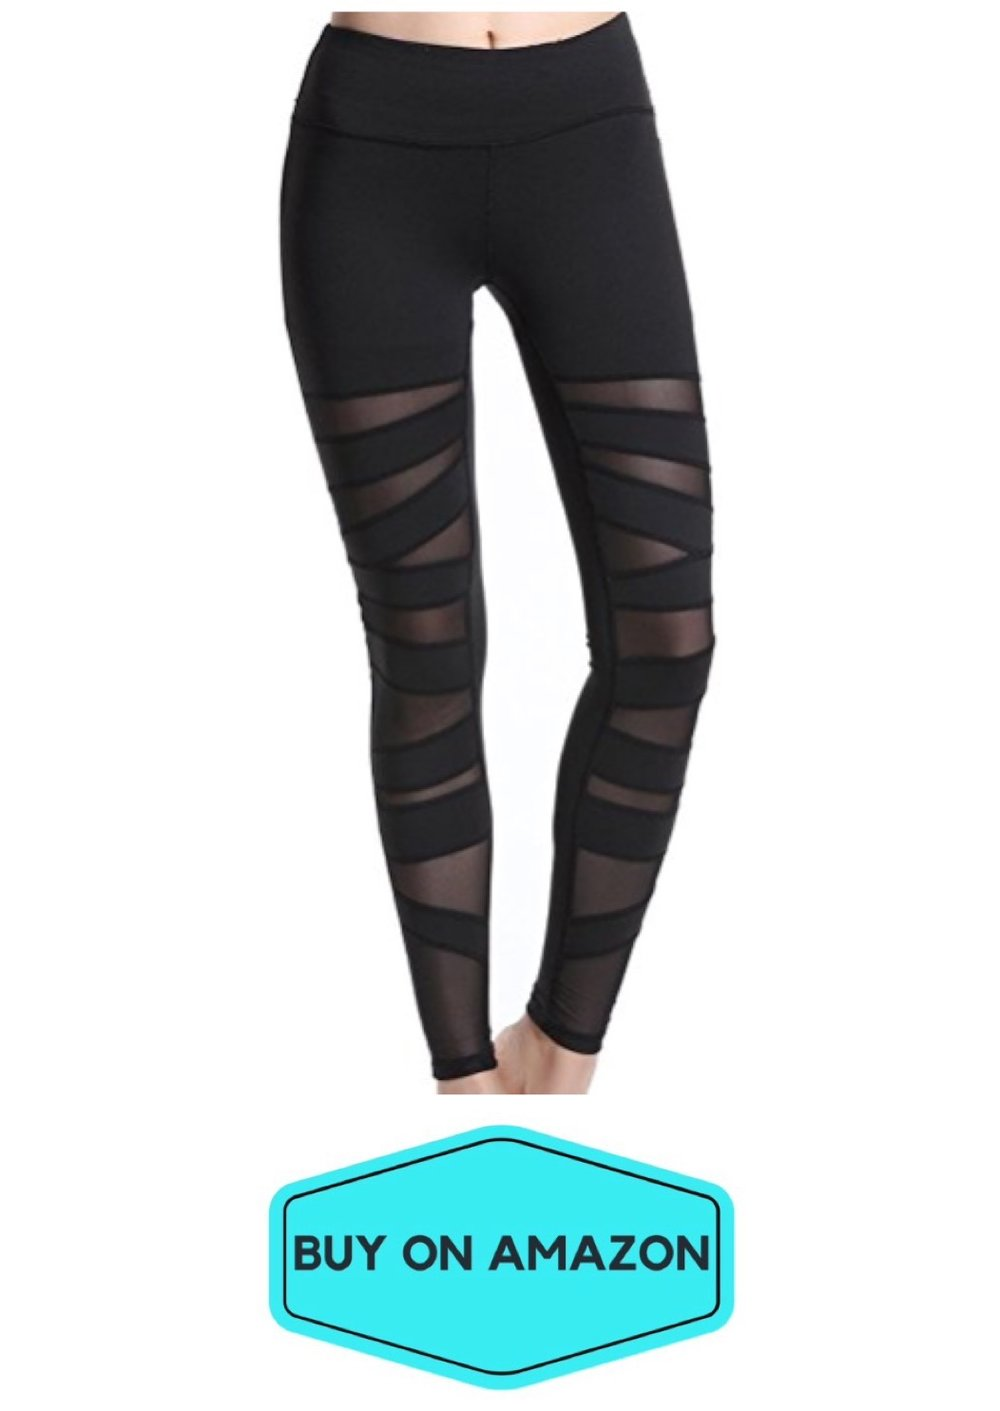 Mummy Mesh Leggings